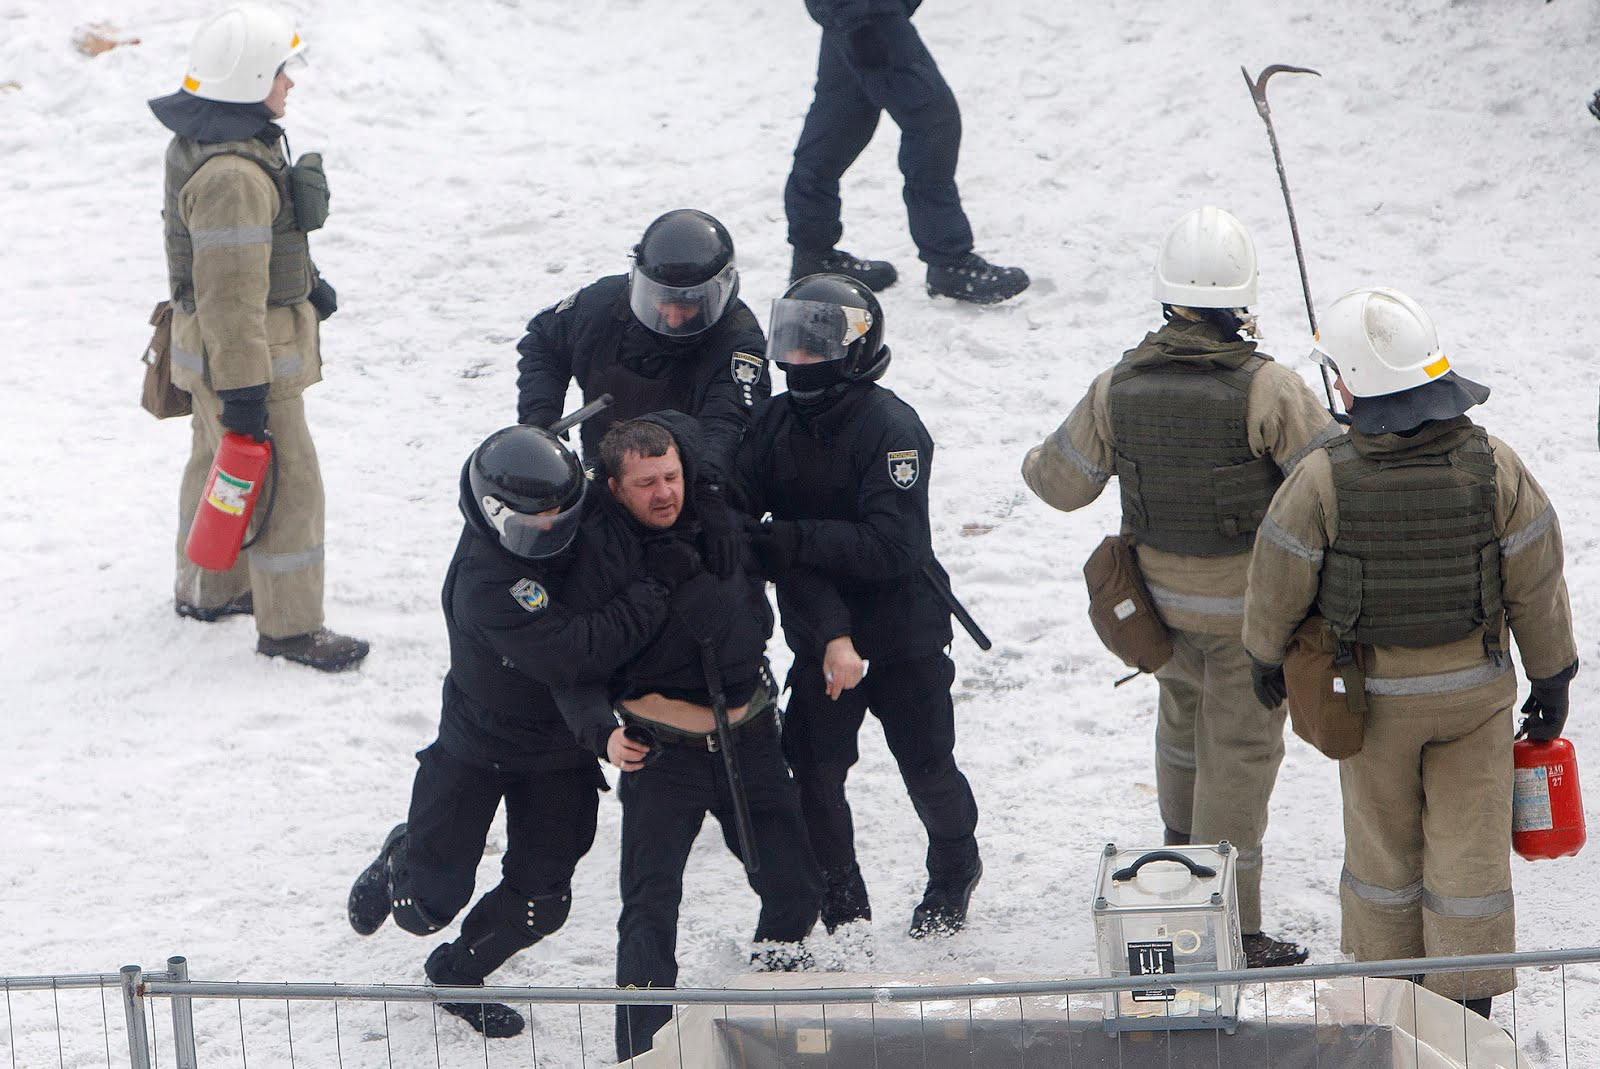 The Committee to Protect Journalists criticises Ukraine for use of force against the media